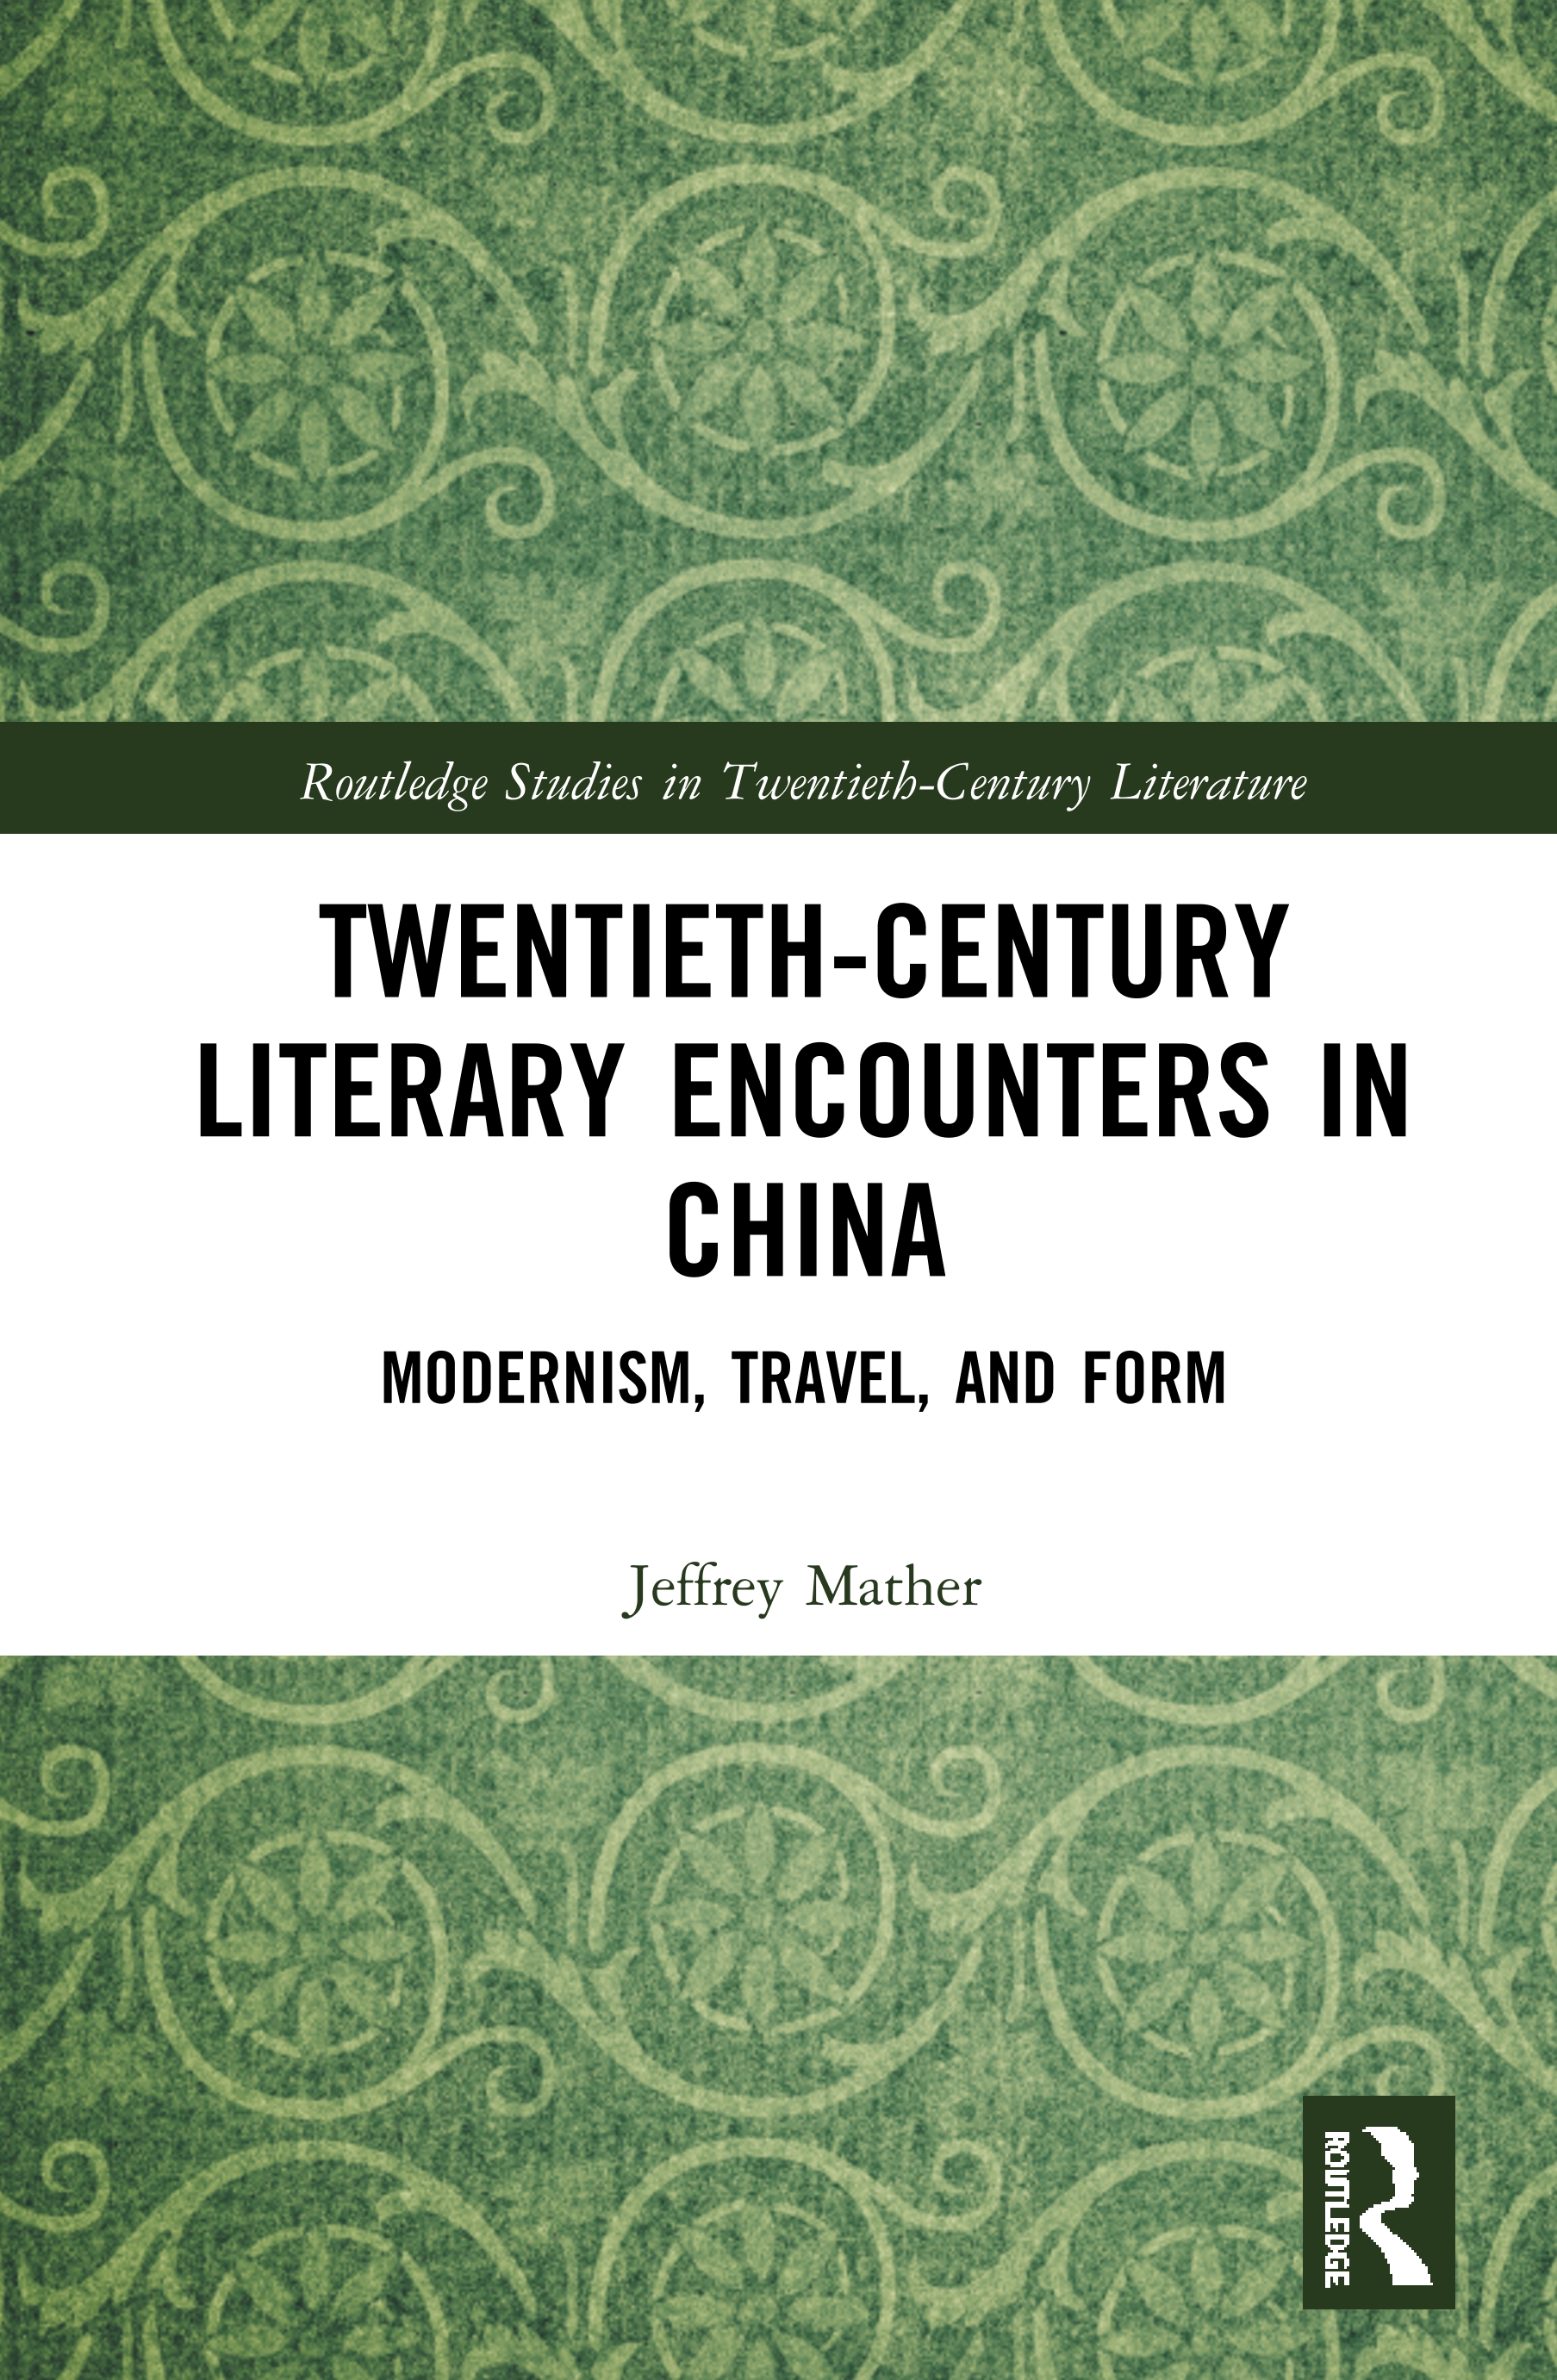 Twentieth-Century Literary Encounters in China: Modernism, Travel, and Form book cover